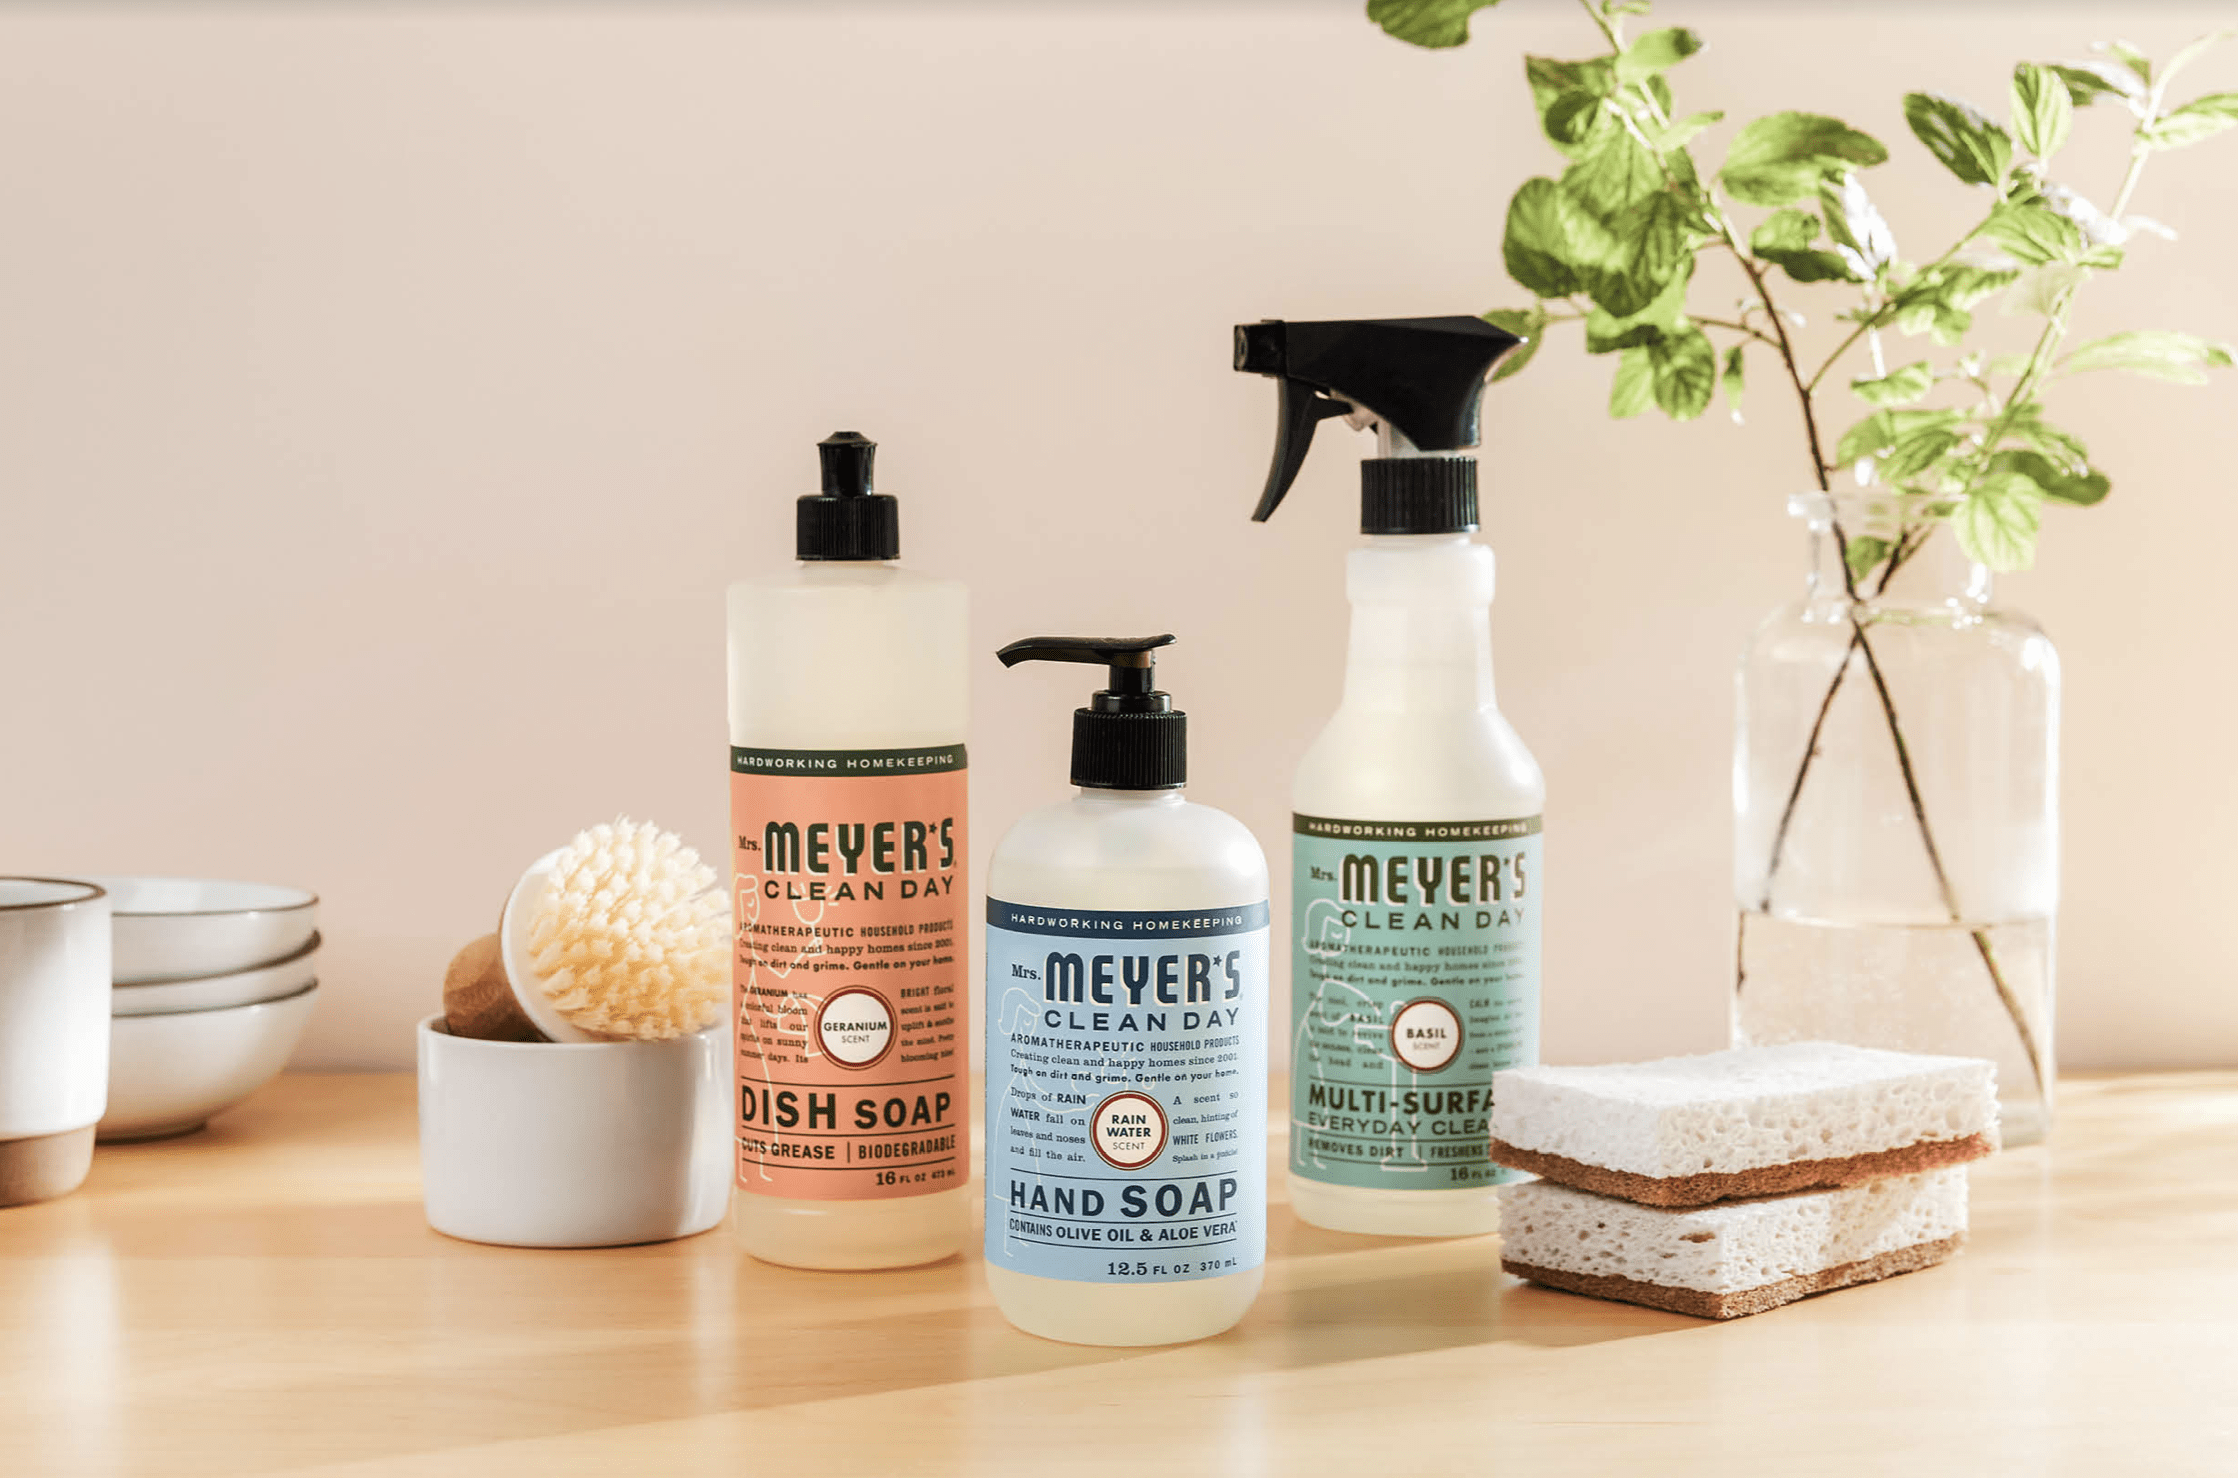 Grove Collaborative Natural Products